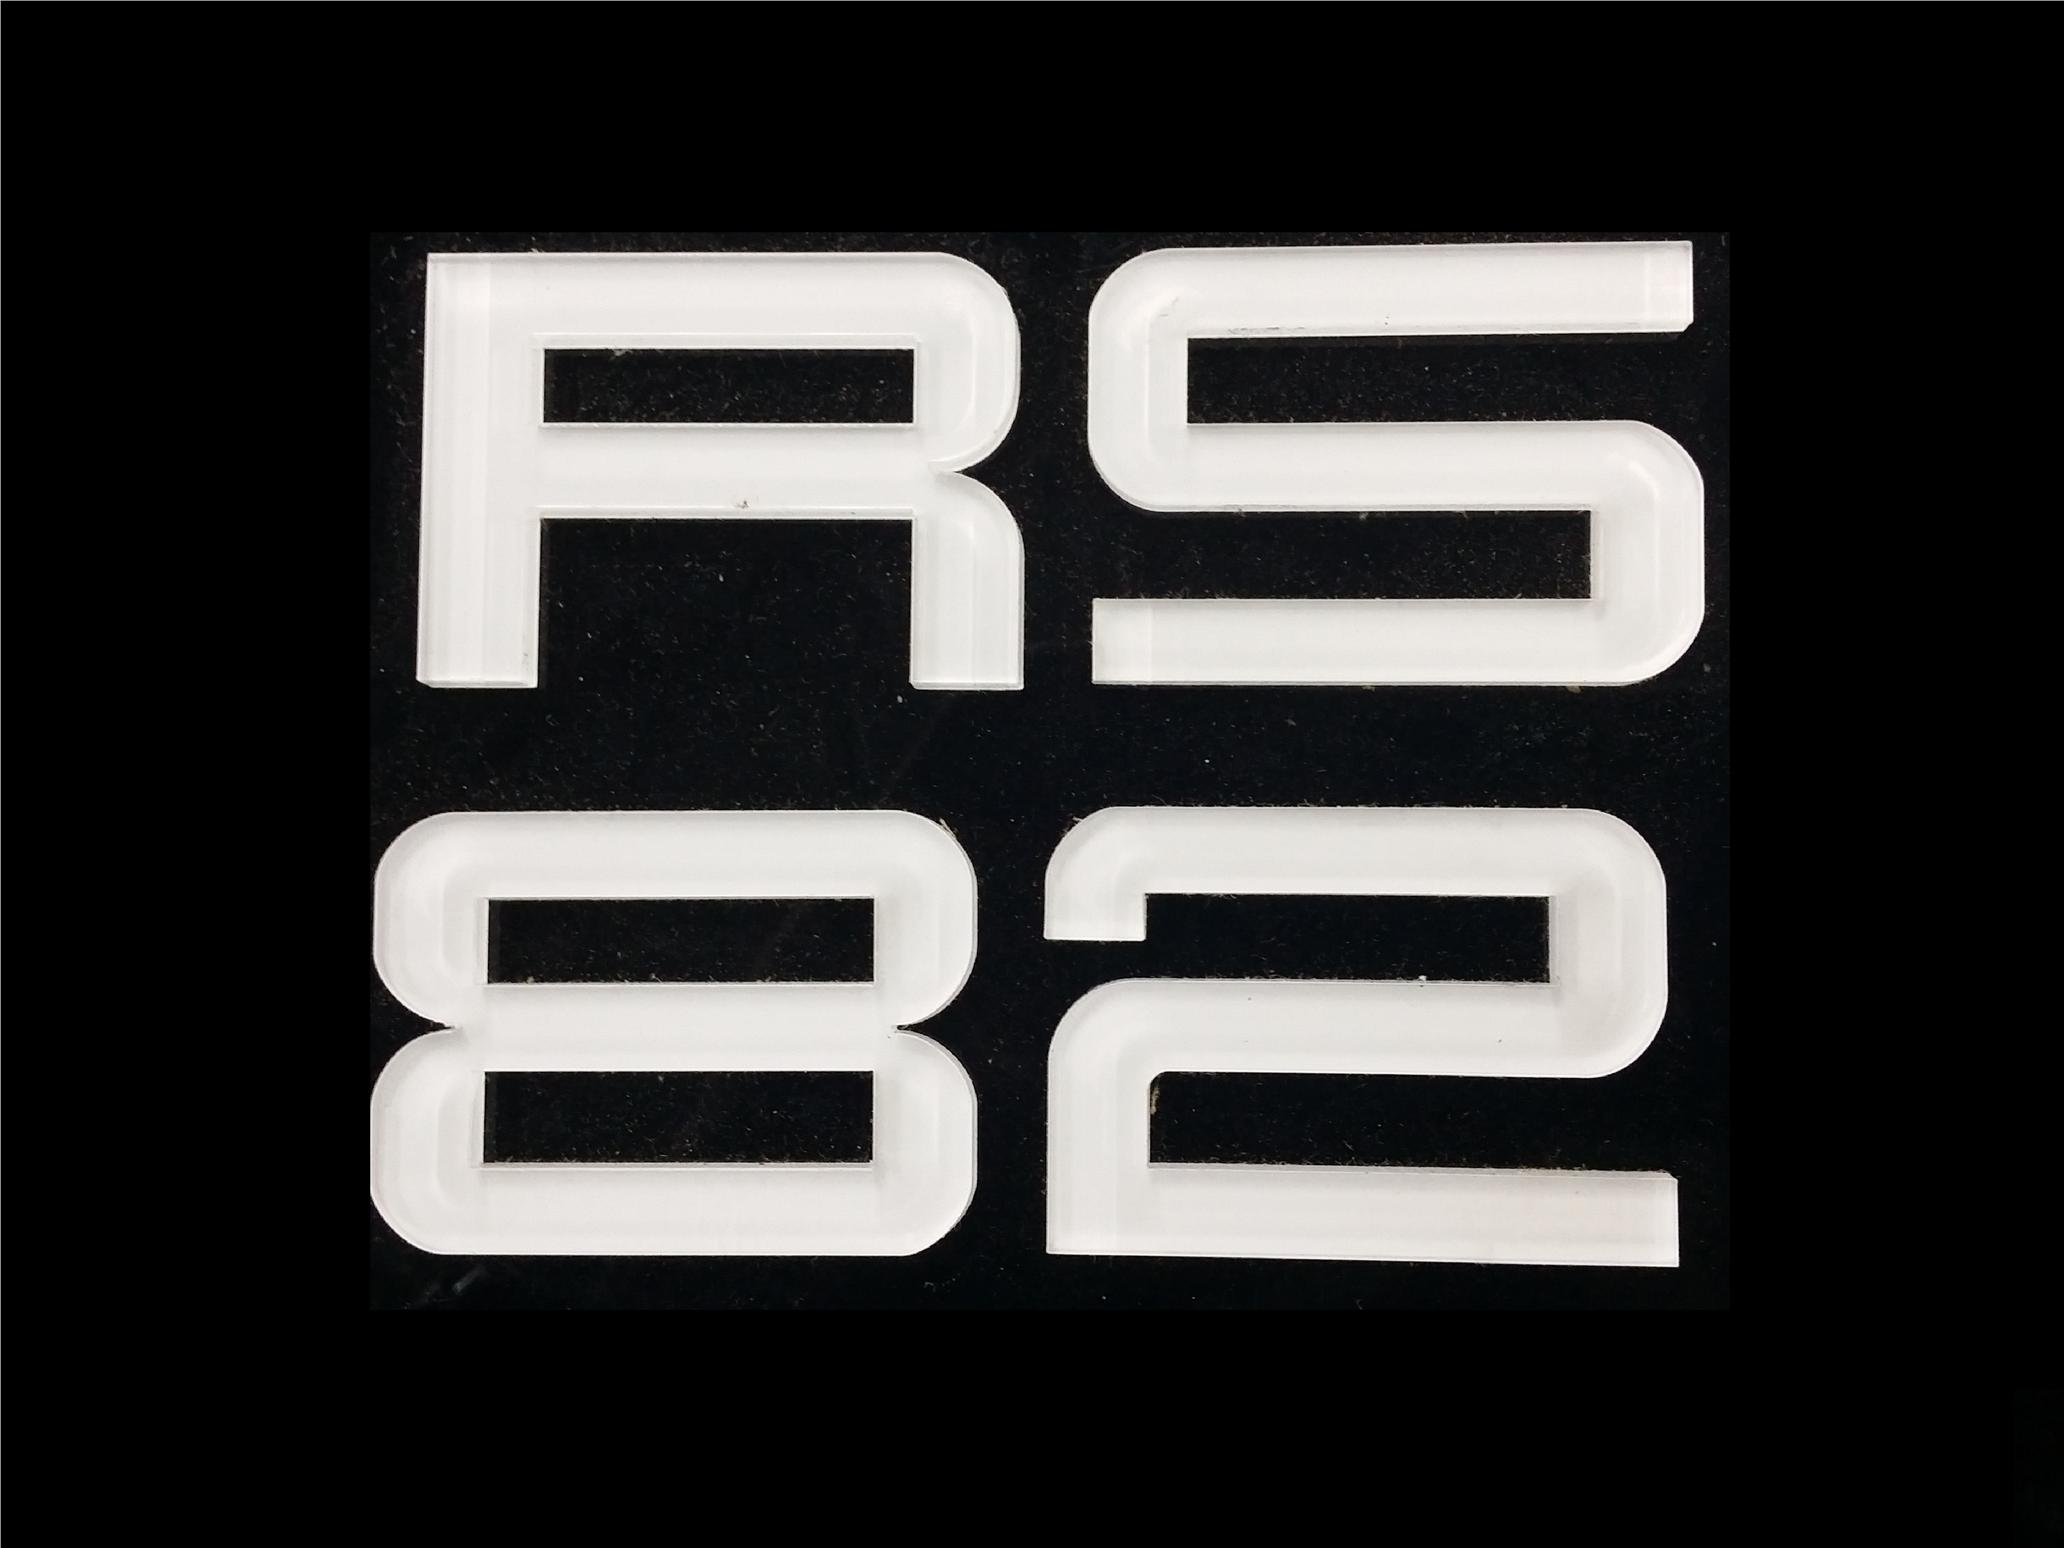 RS FONT CRYSTAL ACRYLIC CAR NUMBER PLATE SET 2 - 7 ALPHABET